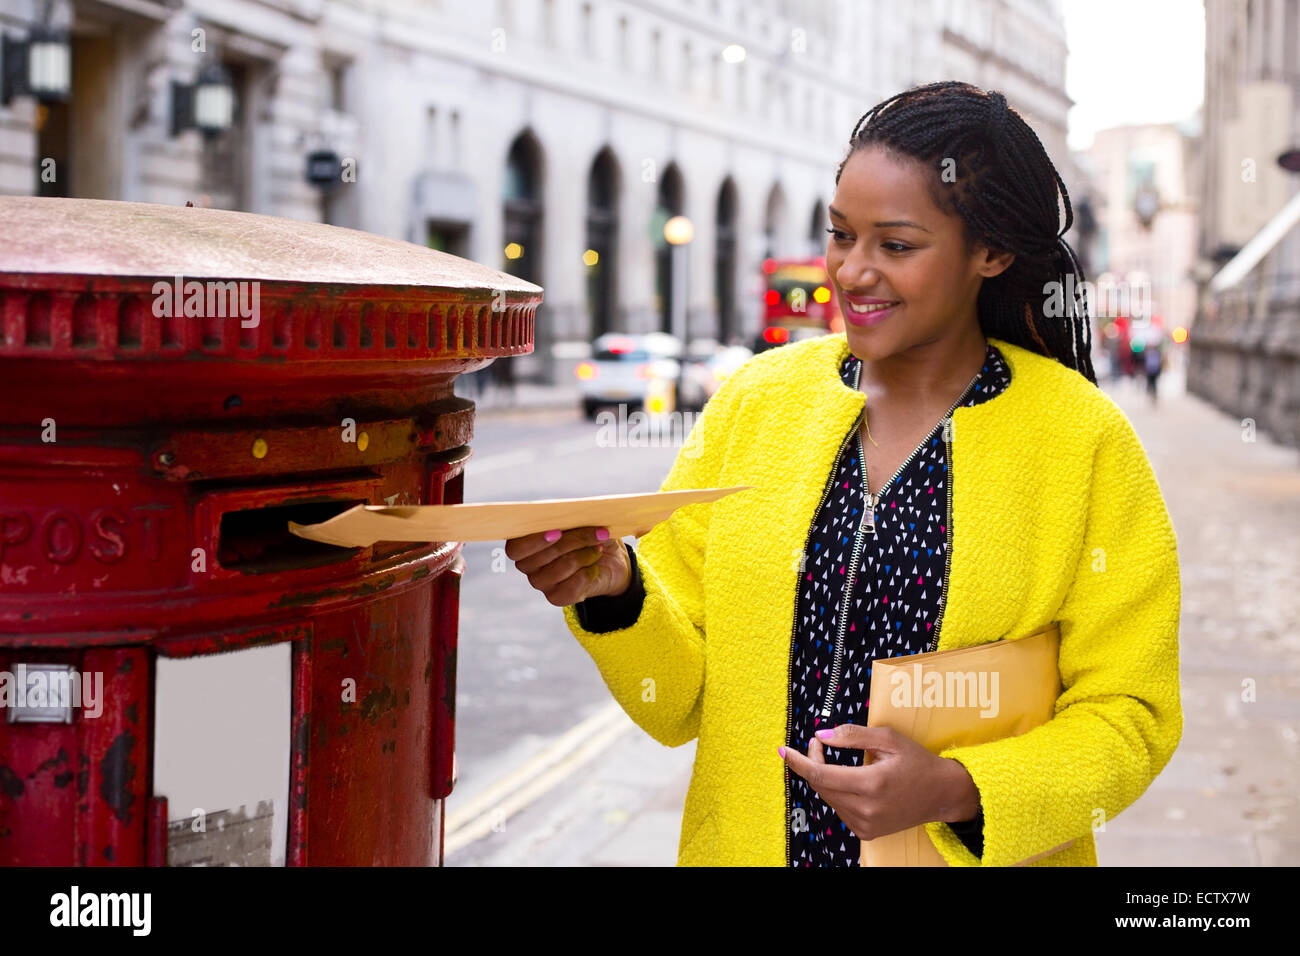 young woman posting letters. - Stock Image